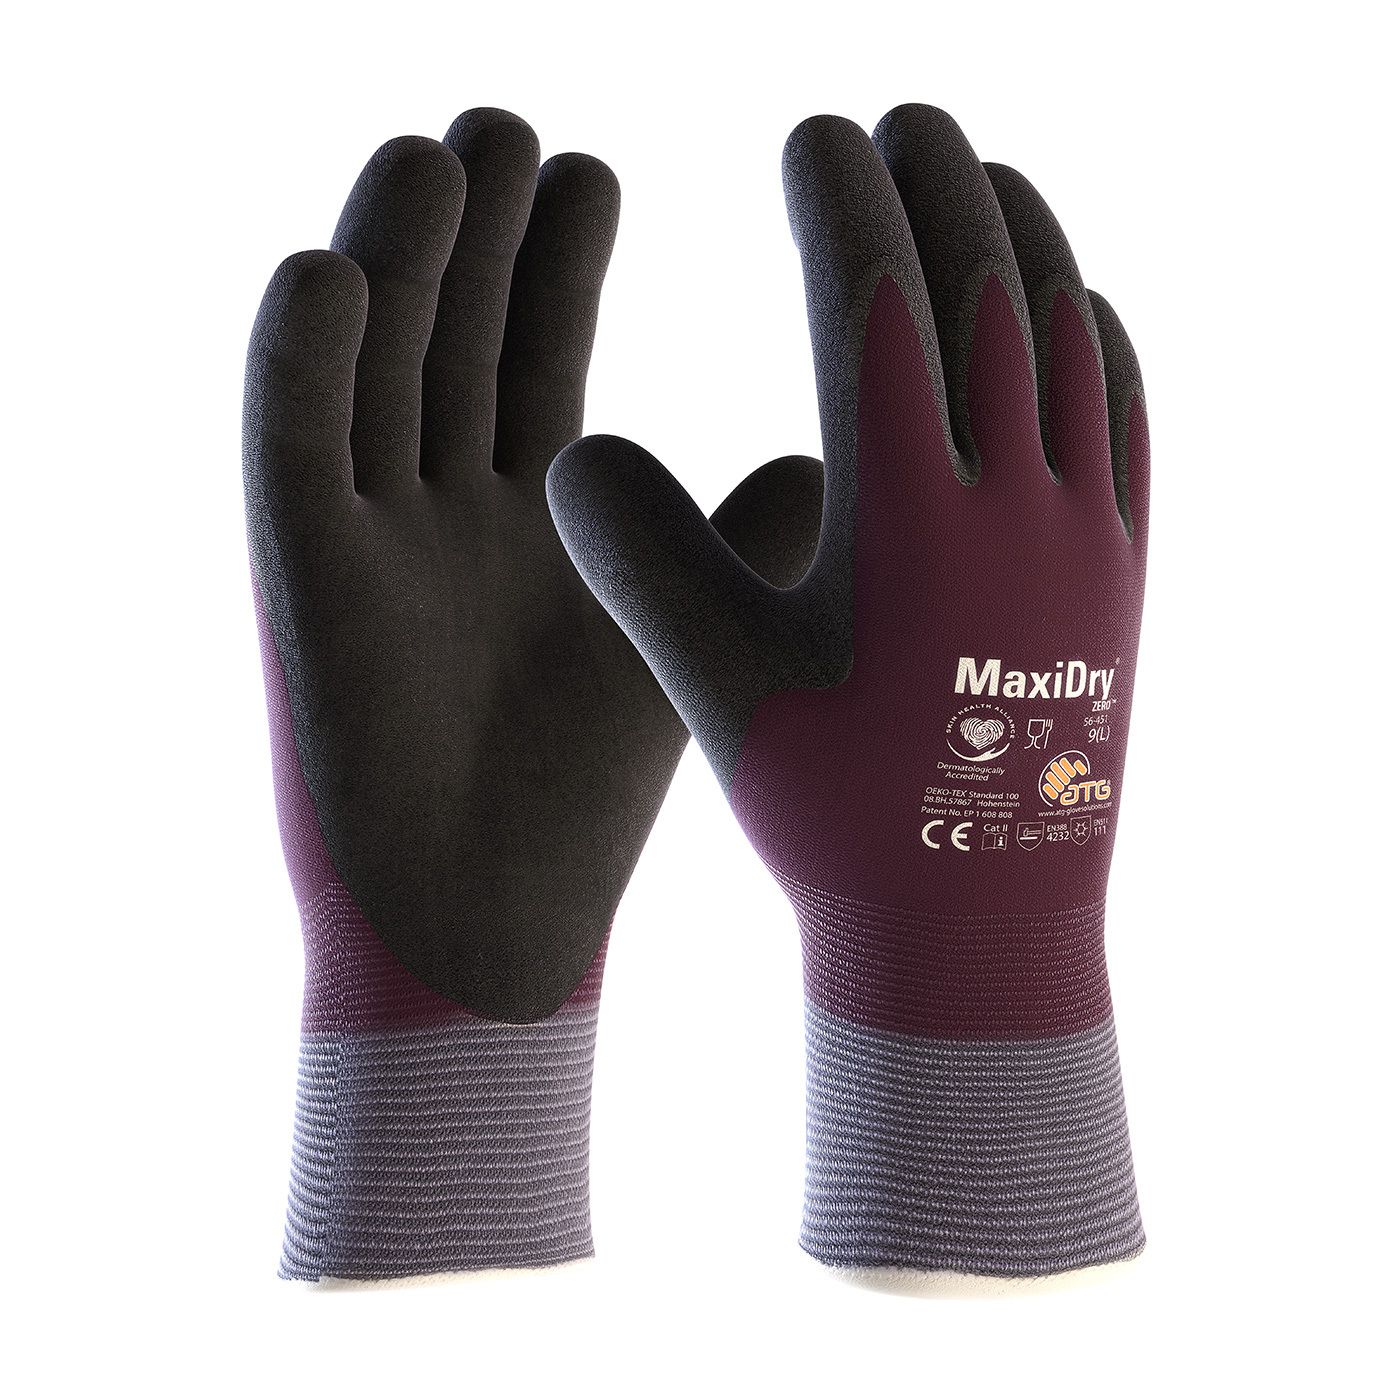 PIP 56-451/L MaxiDry Zero Seamless Knit Nylon/Lycra Glove with Thermal Lining and Double-Dipped Nitrile Coated MicroFoam Grip on Full Hand - Large PID-56451L